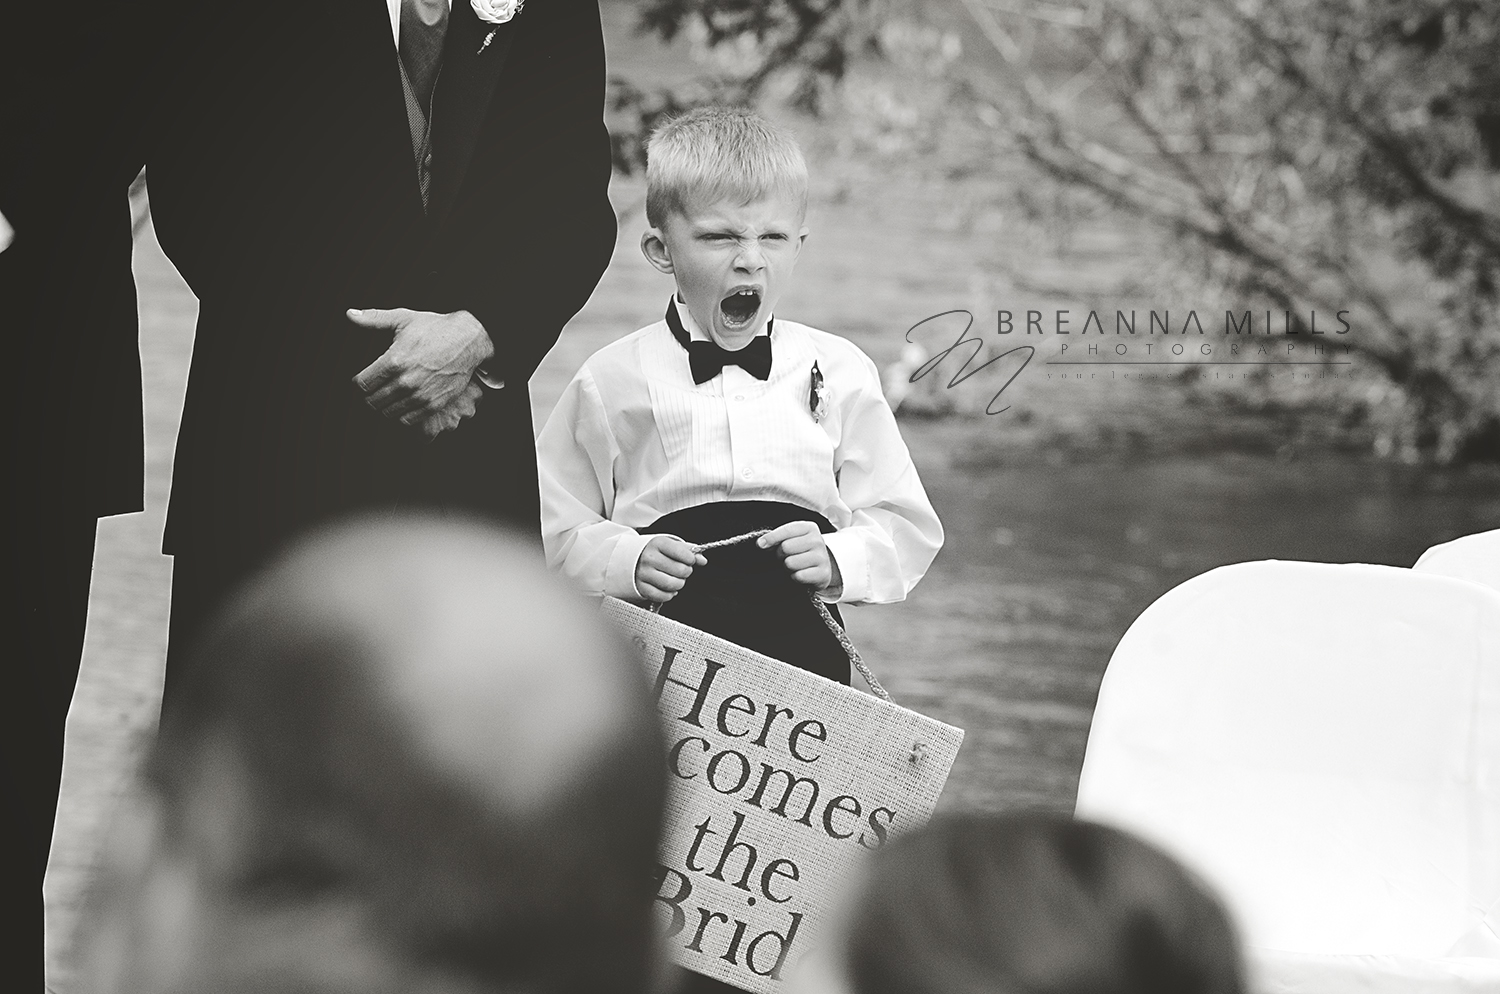 Johnson City wedding photographer, Breanna Mills Photography captures ring bearer at wedding ceremony.